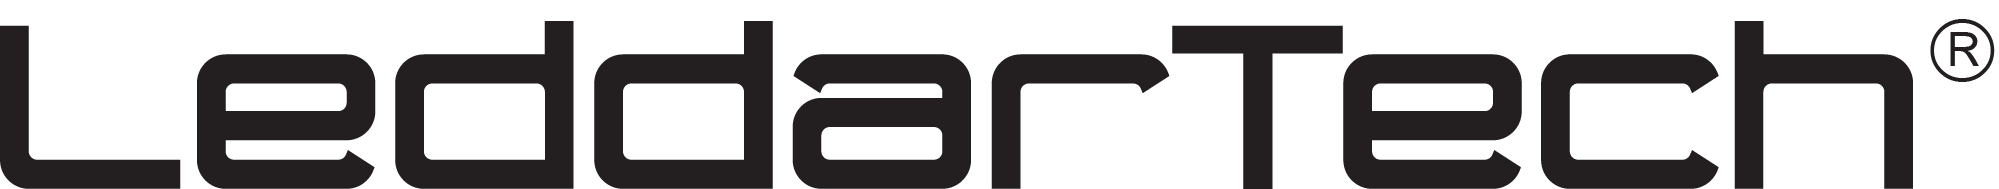 LeddarTech Partners with Ningbo Sunny Automotive Optech Co. Ltd to Accelerate LiDAR Deployment for Advanced Driver Assistance Systems and Autonomous Driving Applications, The Canadian Business Journal